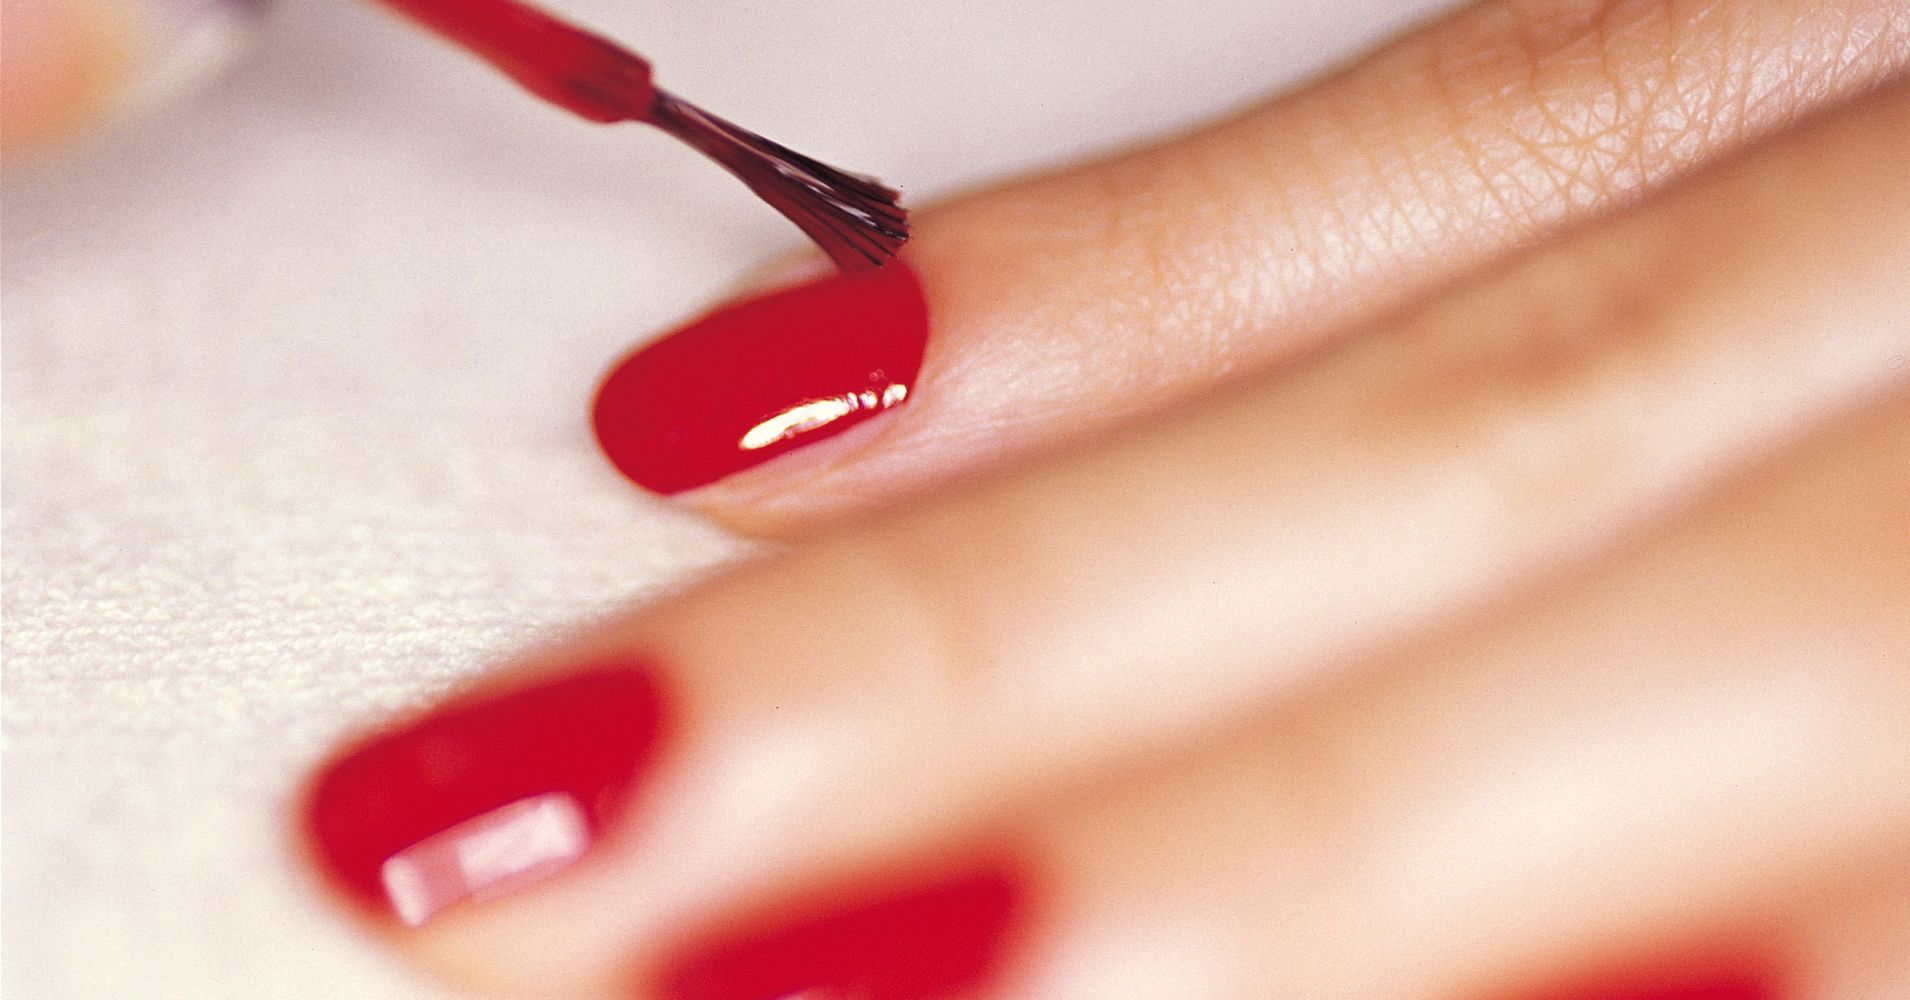 Yes, Chemicals In Nail Polish Can Leach Into Your Body | HuffPost